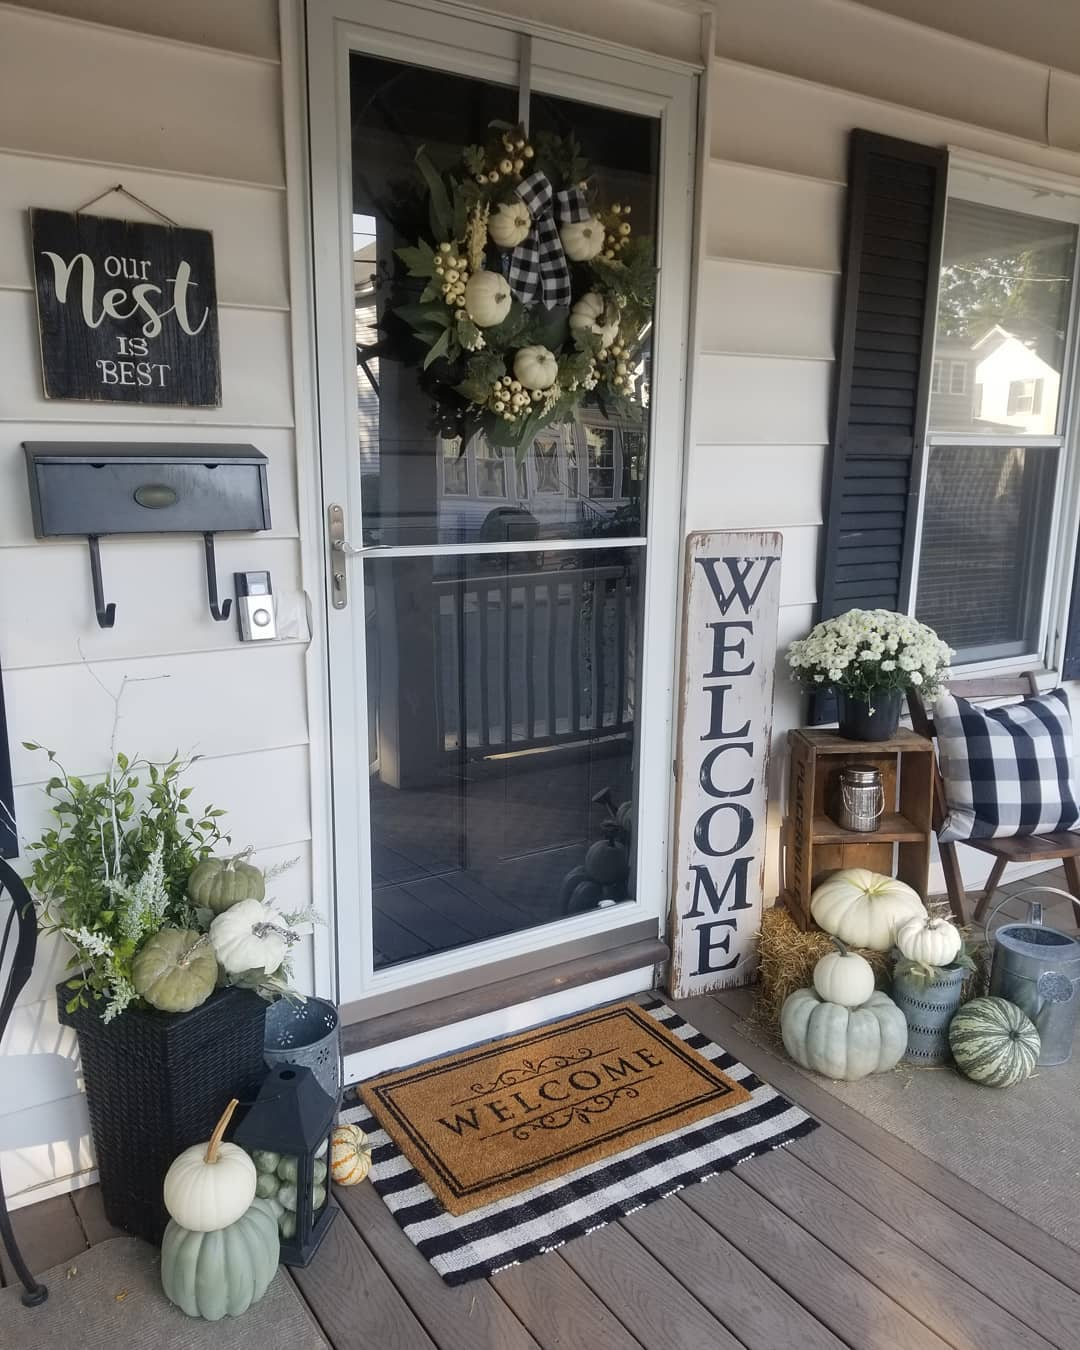 1569404385 549 front porch decor ideas to welcome fall with - Front Porch Decor Ideas To Welcome Fall With